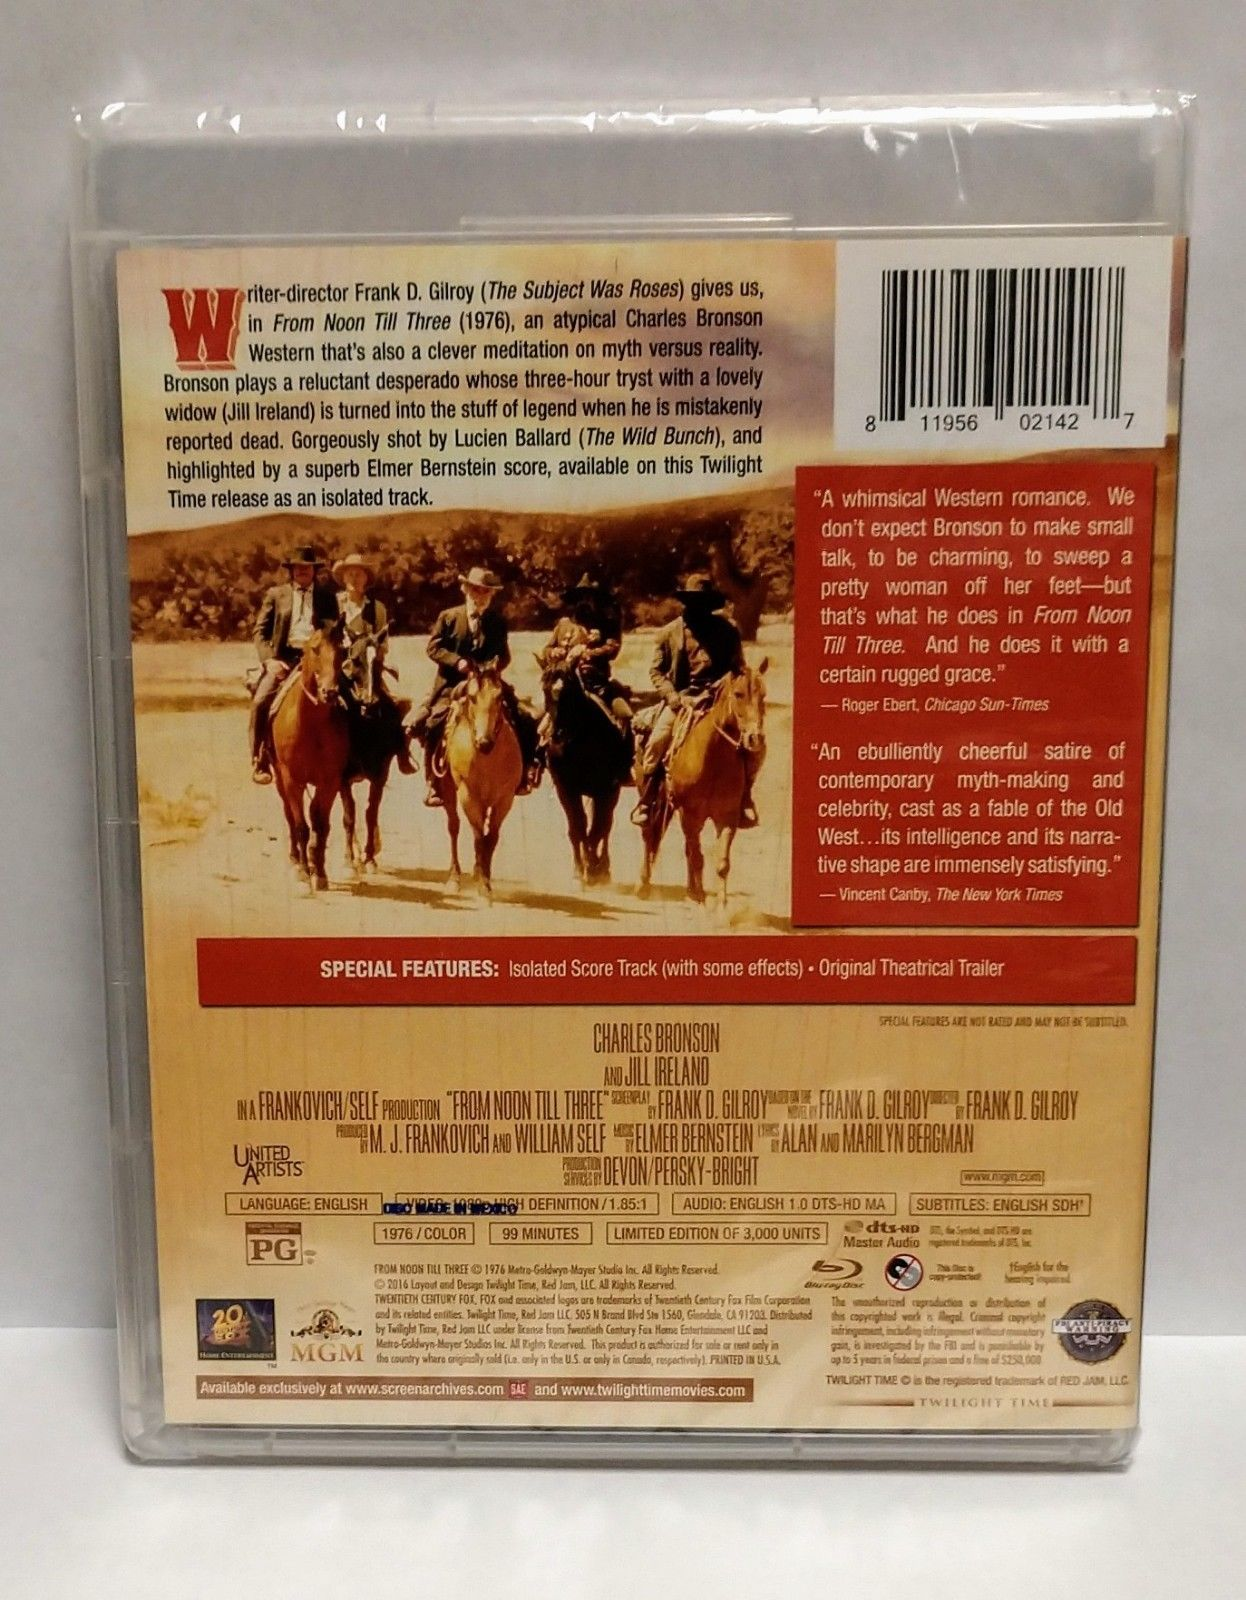 FROM NOON TILL THREE (1976) Twilight Time Blu Ray - Charles Bronson - BRAND NEW